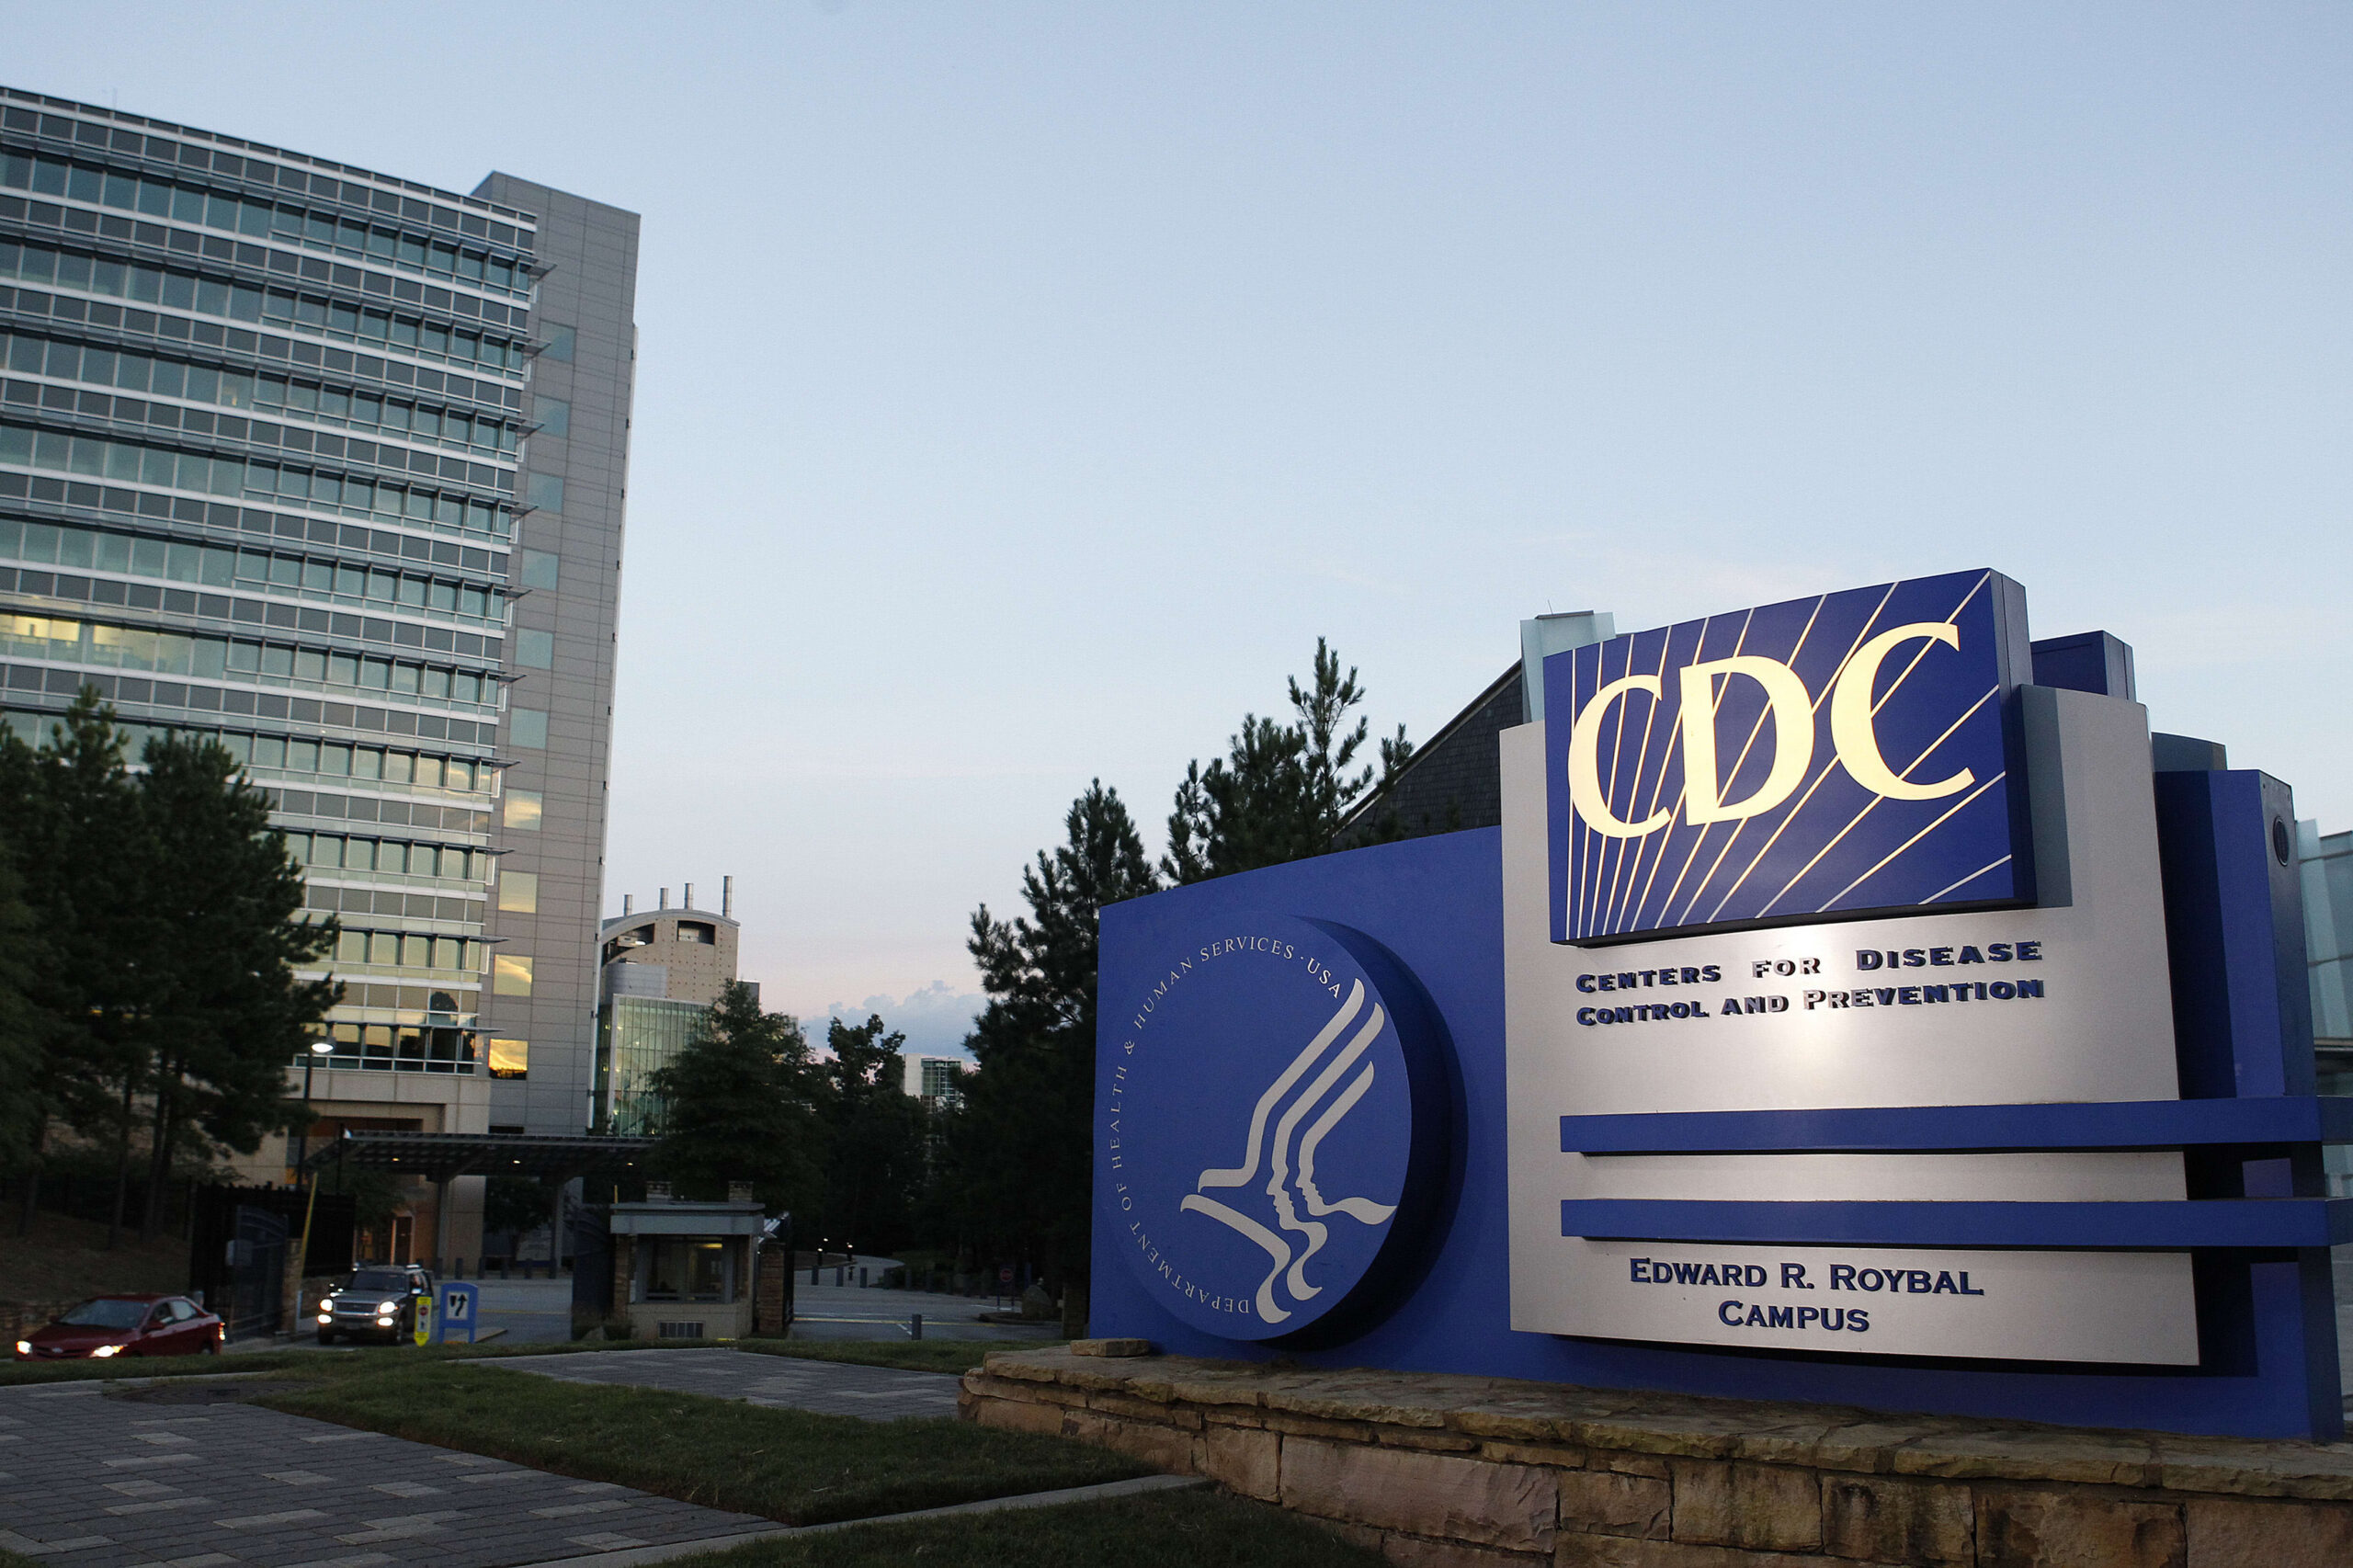 White House considers CDC shakeup over Covid-19 response, report says 2